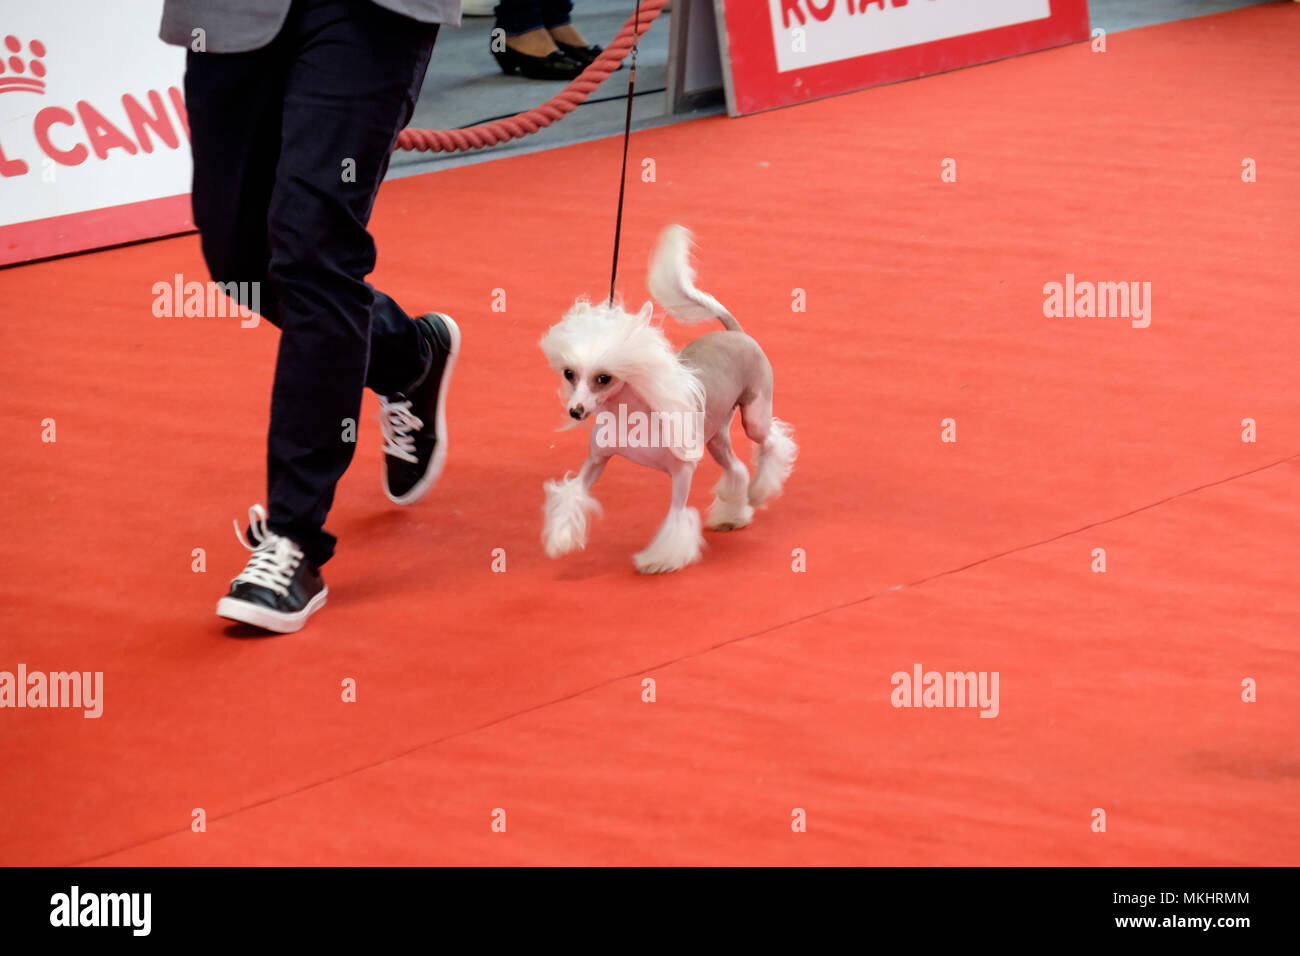 Person showing his Chinese Crested Dog to the judges during a dog show competition - Stock Image